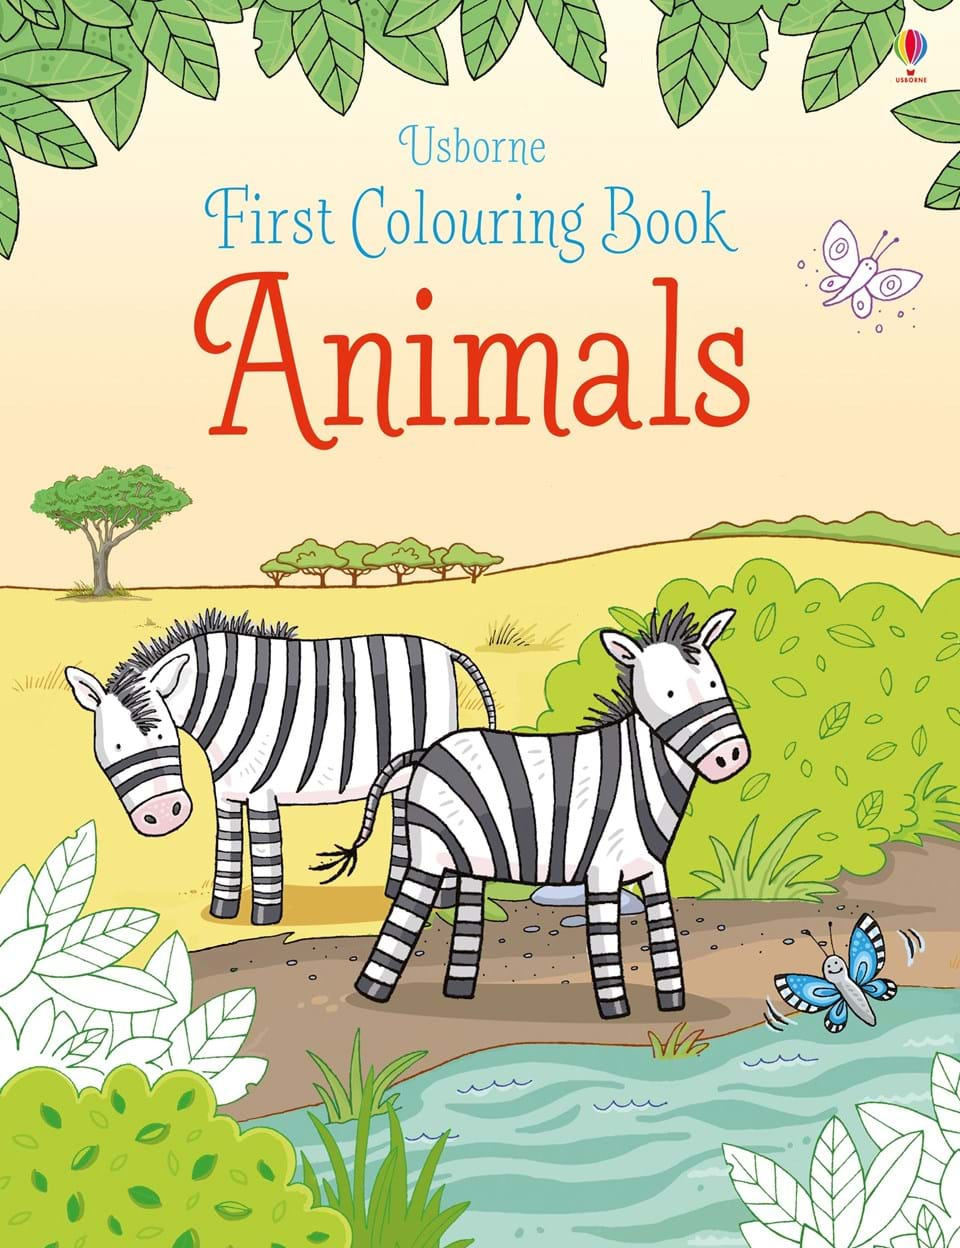 Usborne: First Colouring Book Animals - Nimble Fingers